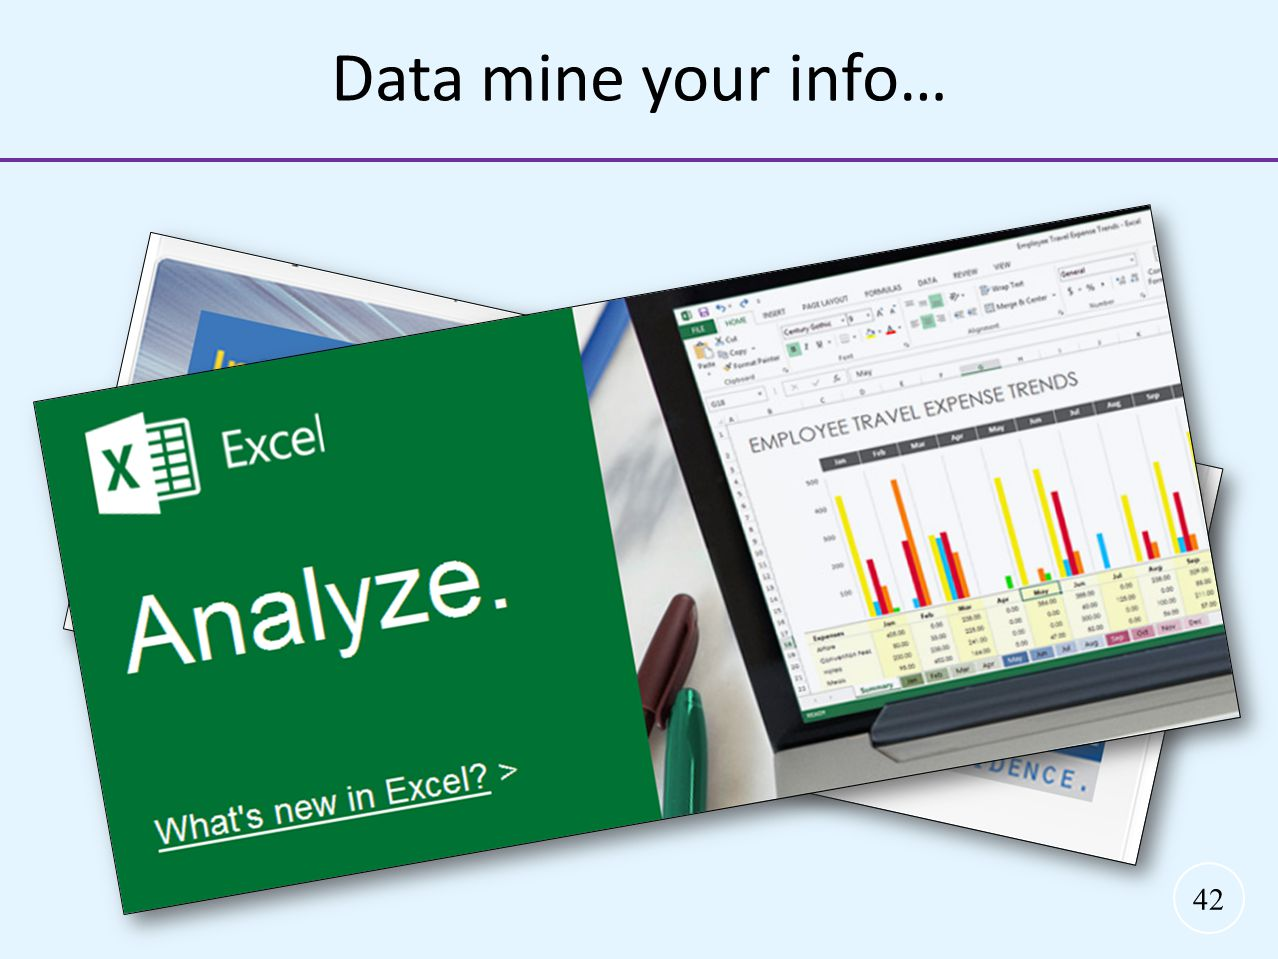 Data mine your info… Data mine your information…. 4 simple steps: